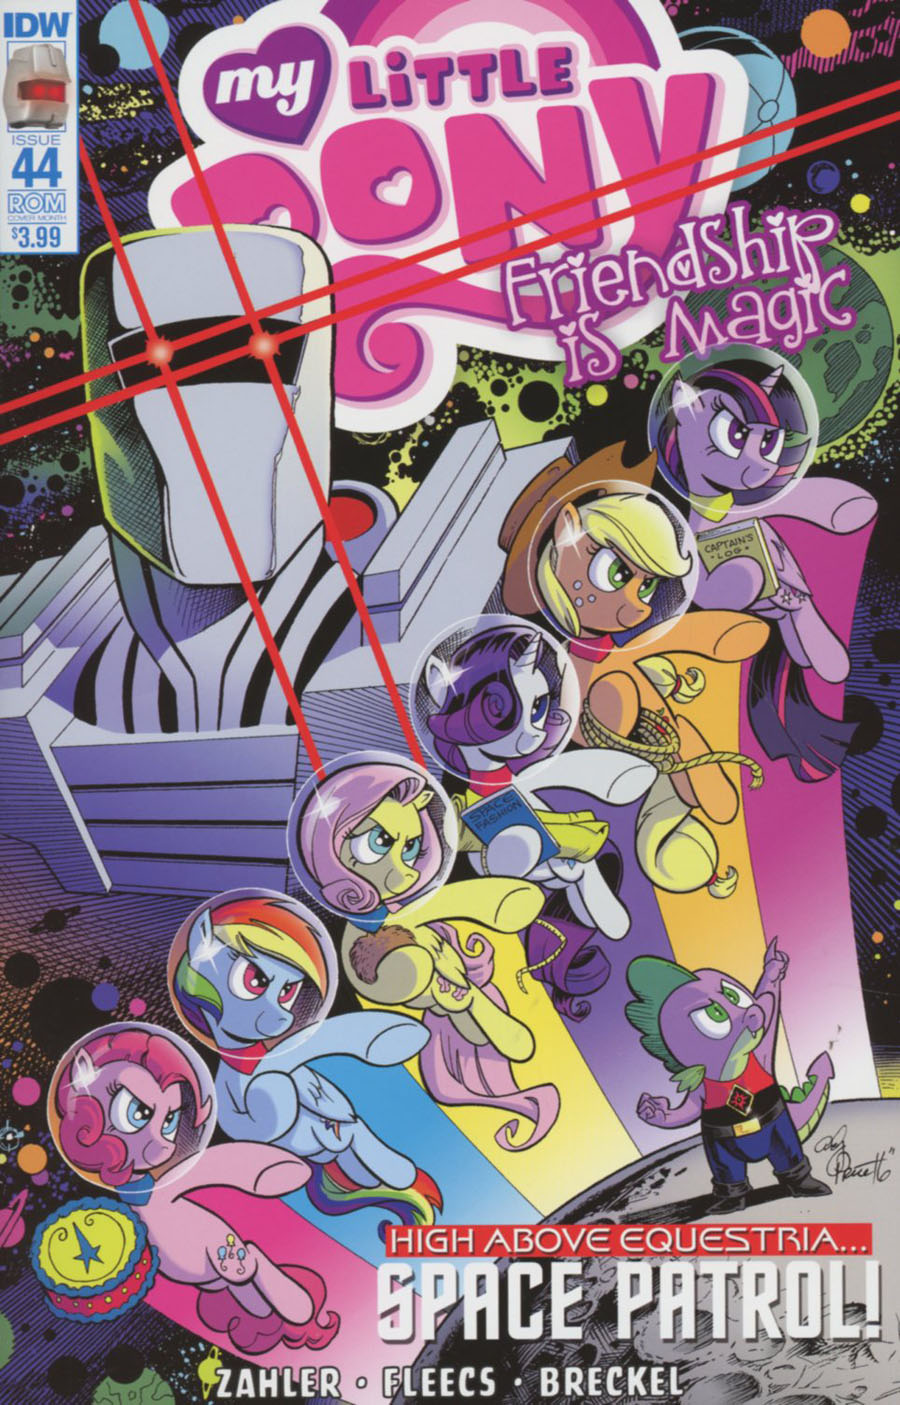 My Little Pony Friendship Is Magic #44 Cover B Variant Andy Price ROM Subscription Cover